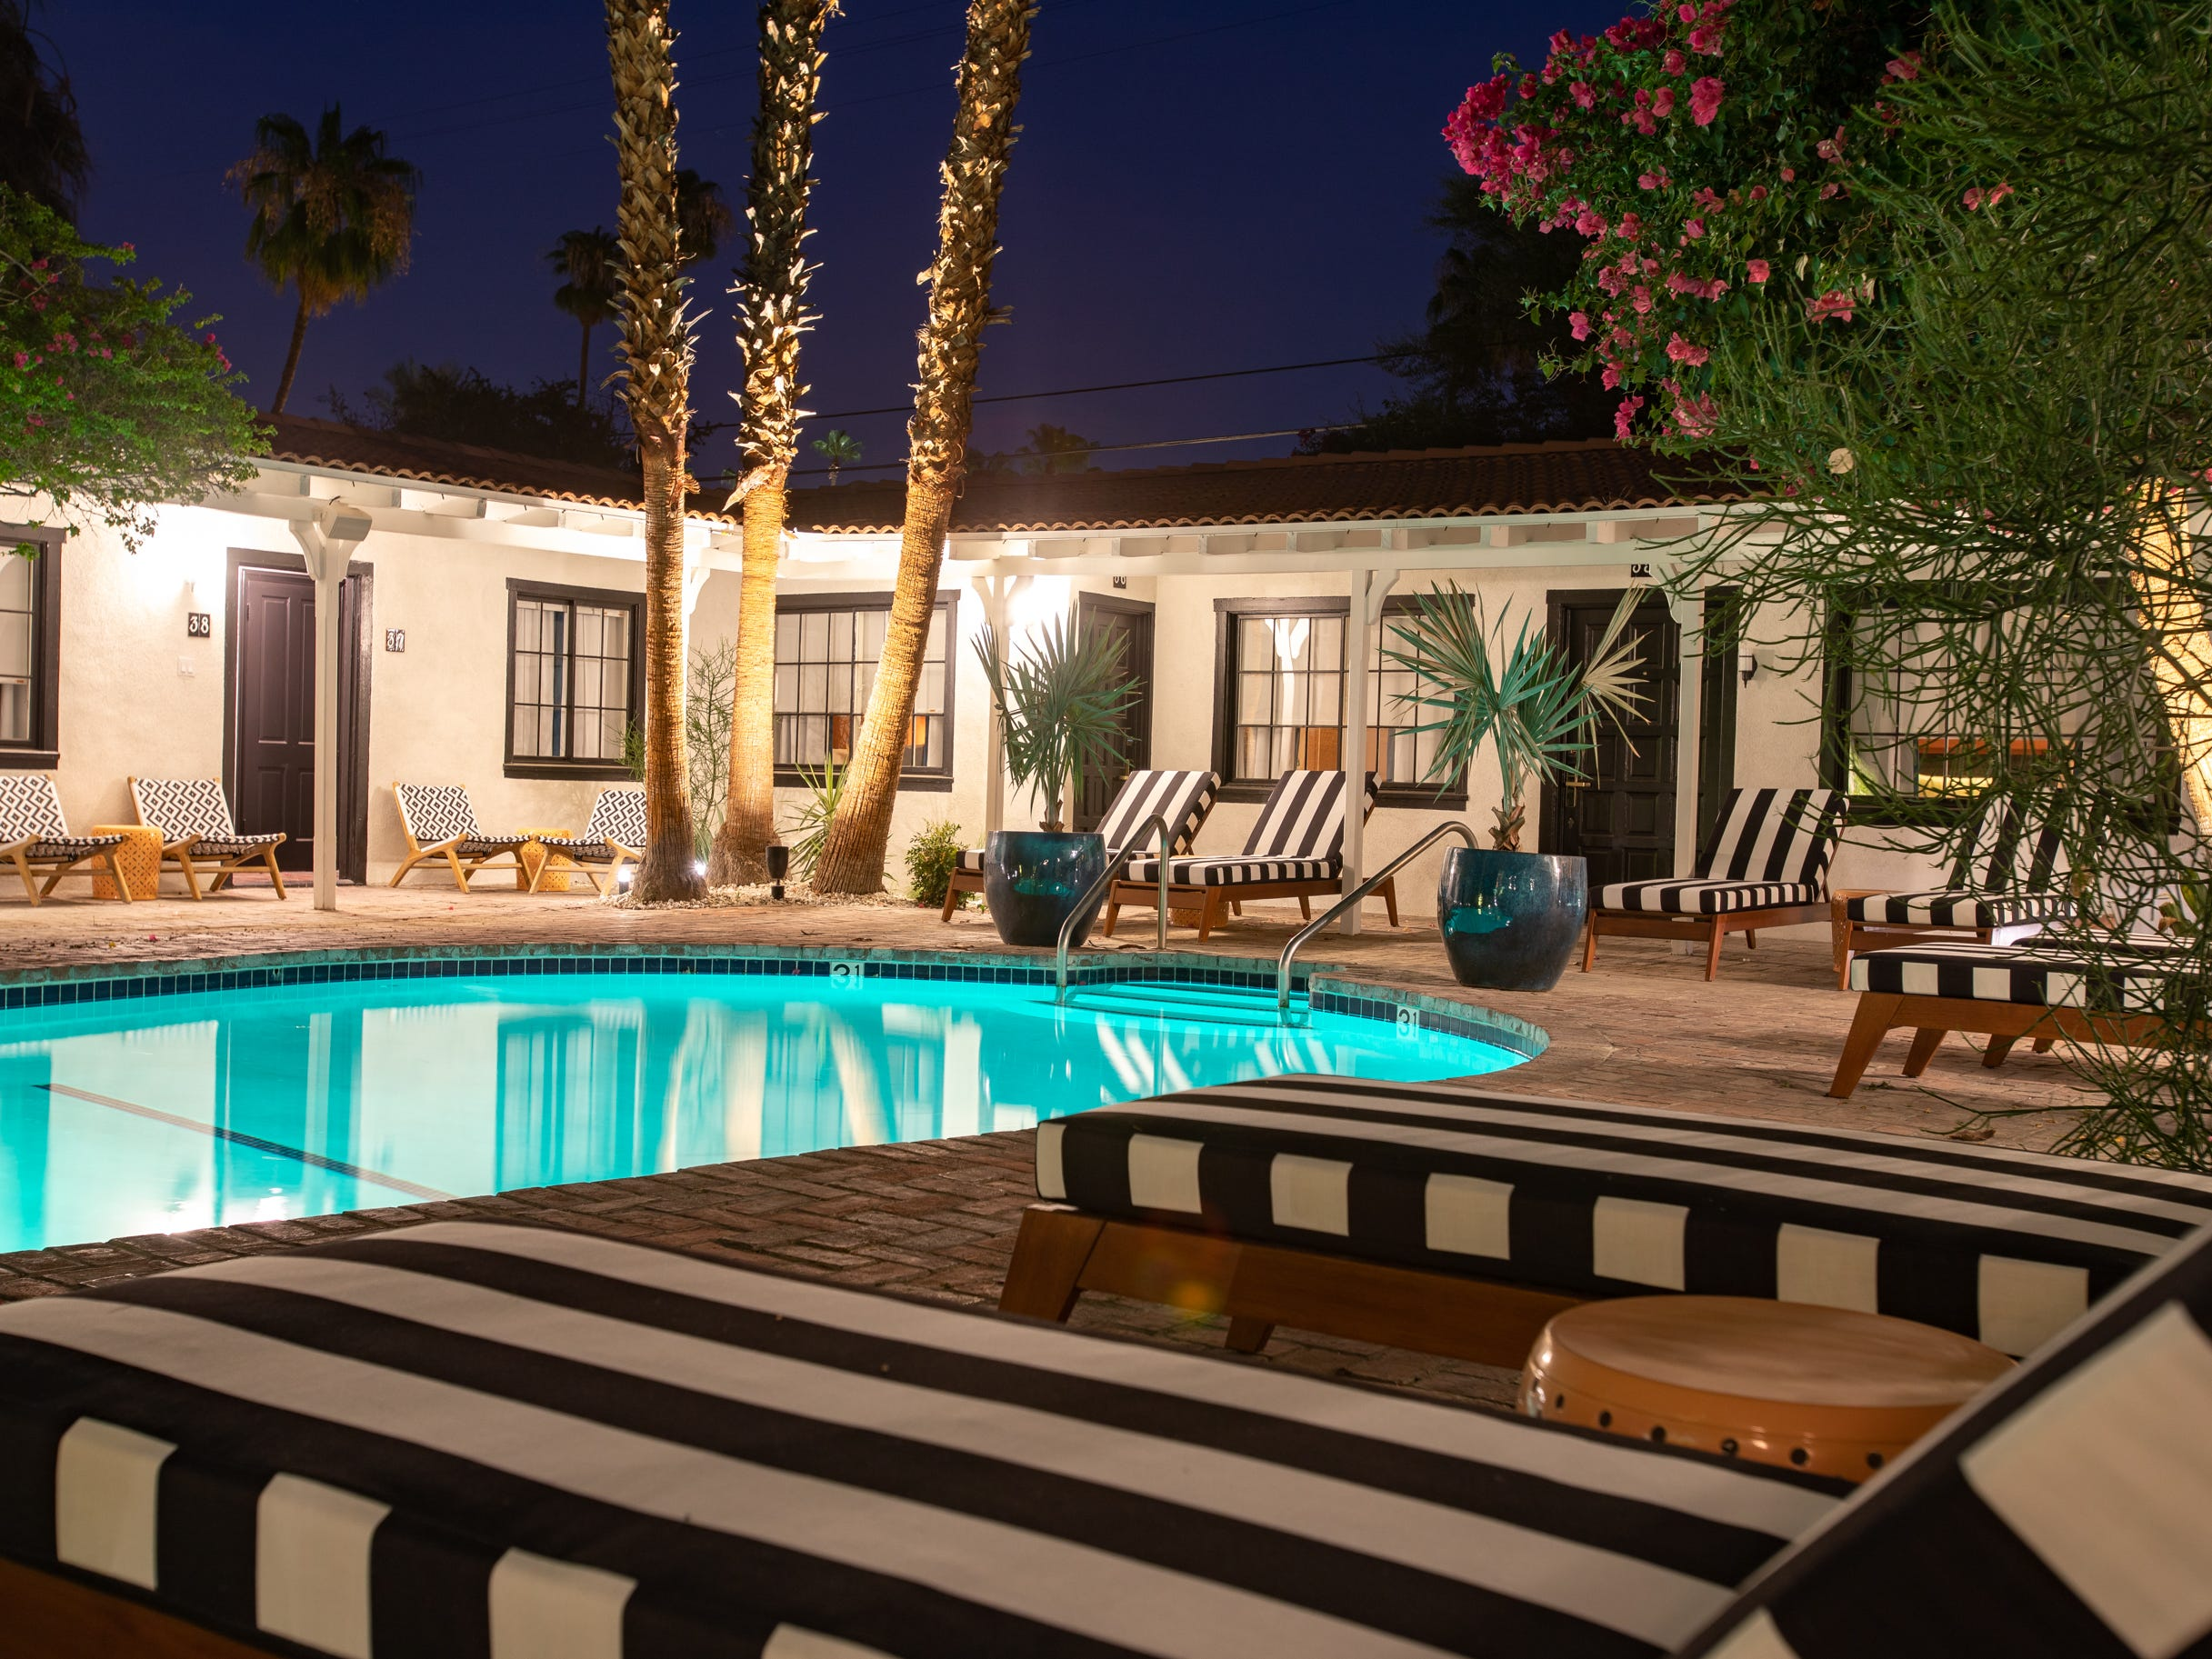 There are three heated pools onsite at Villa Royale Palm Springs.